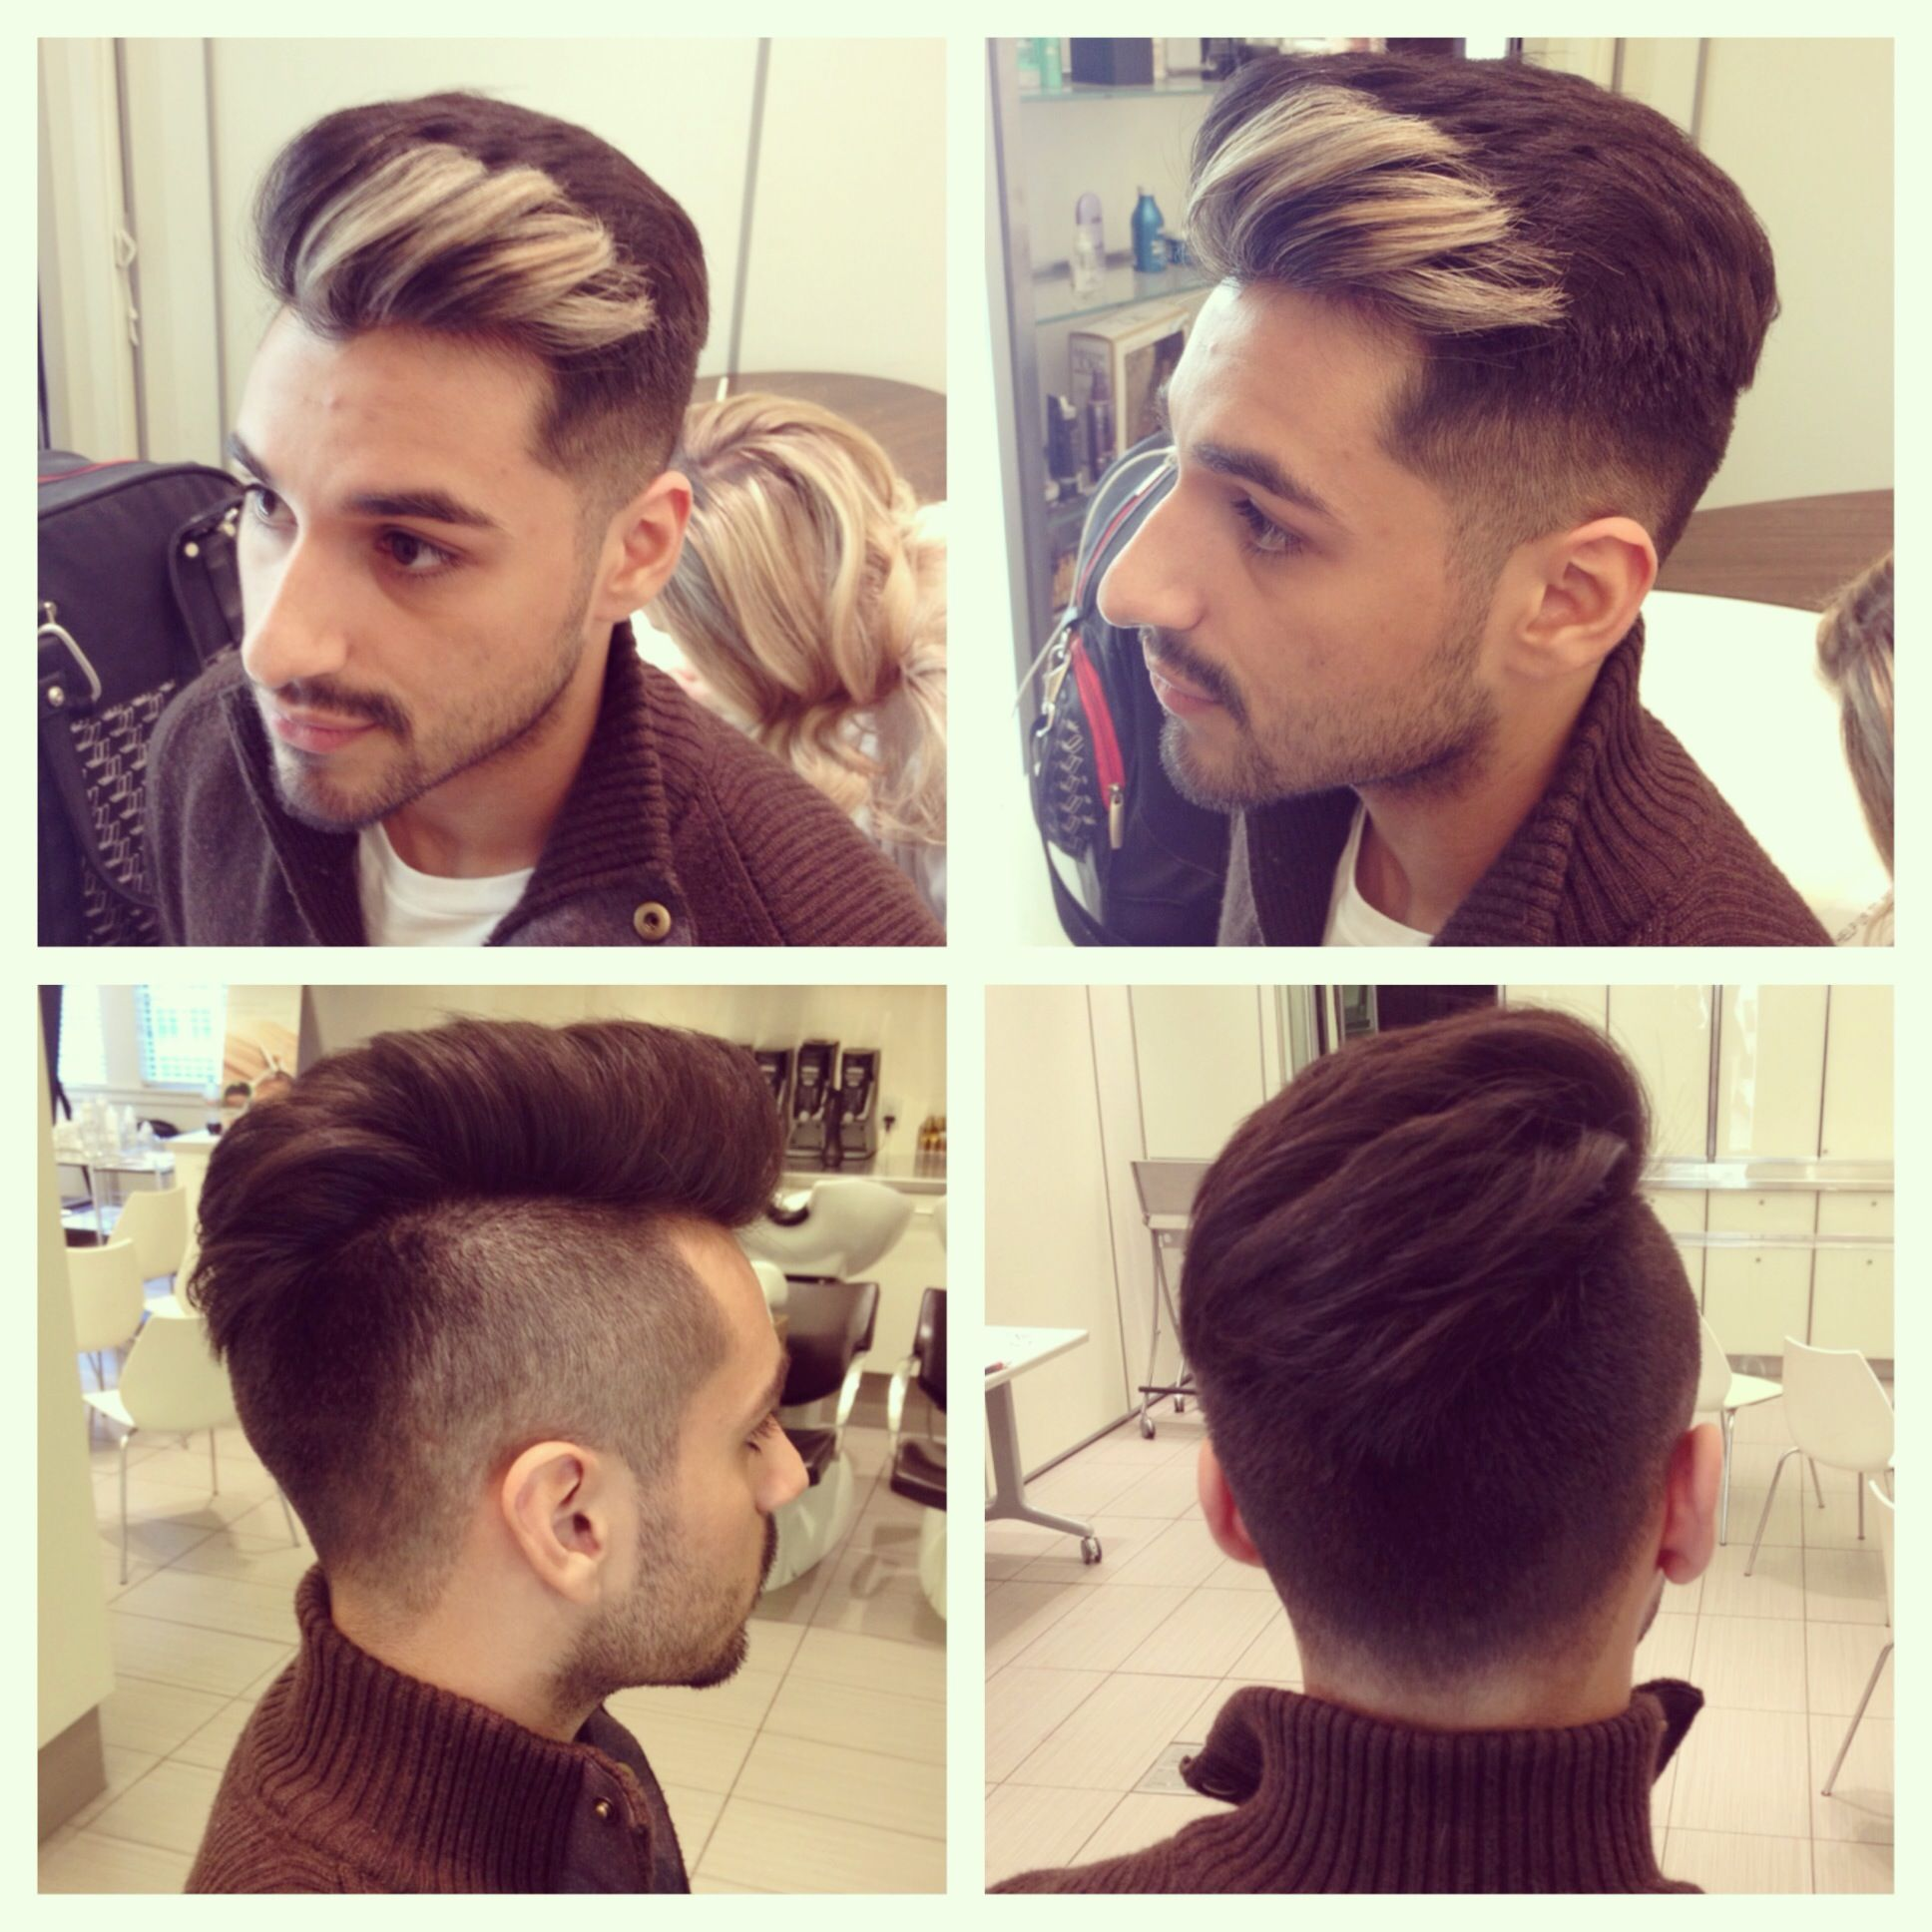 Hair color trends and ideas for men - Color Done By Catherine And Cut By Aimee Men S Style Hair Cut Cool Hair Funky Hair Latest Hair Trend Blow Dry Hair Stylist Hair Color Color Trends